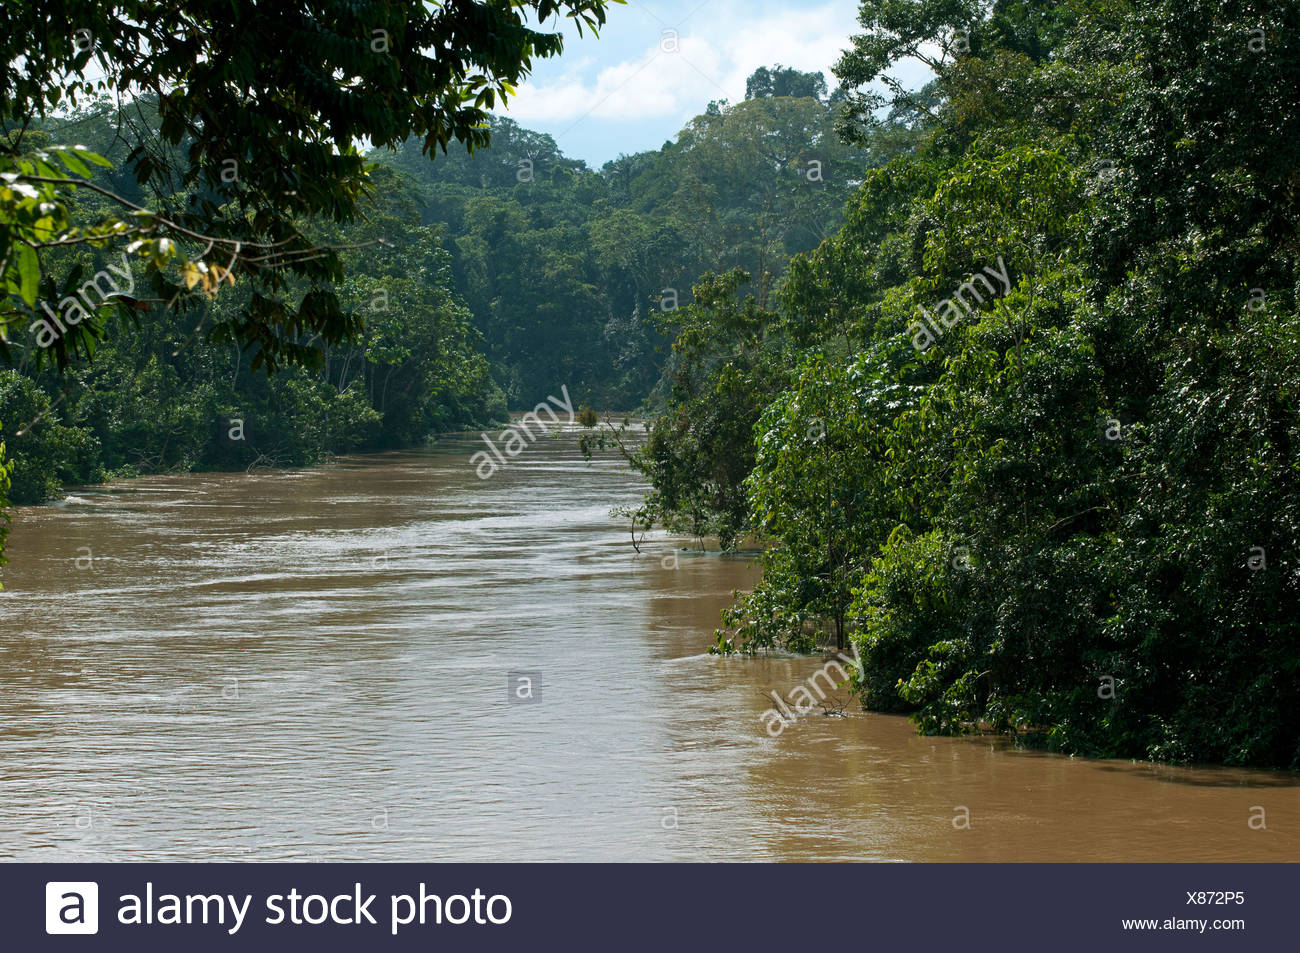 Lush rain forest vegetation at the banks of the flooded Tiputini river at the border with Yasuni National Park, Amazon basin - Stock Image